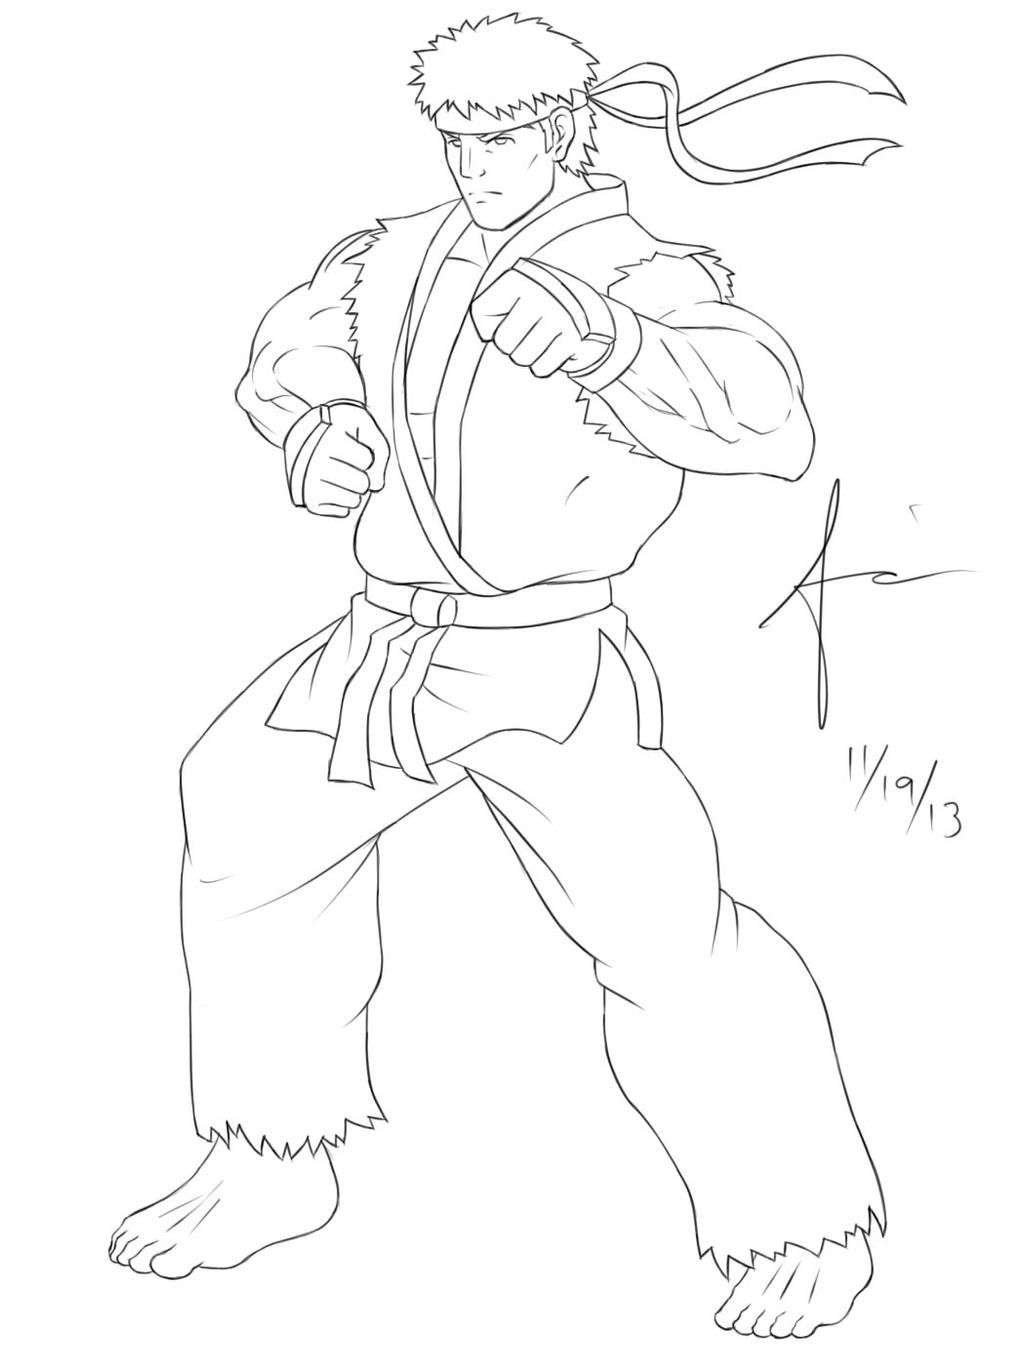 Ryu Street Fighter Lineart By Ajanime22 On Deviantart